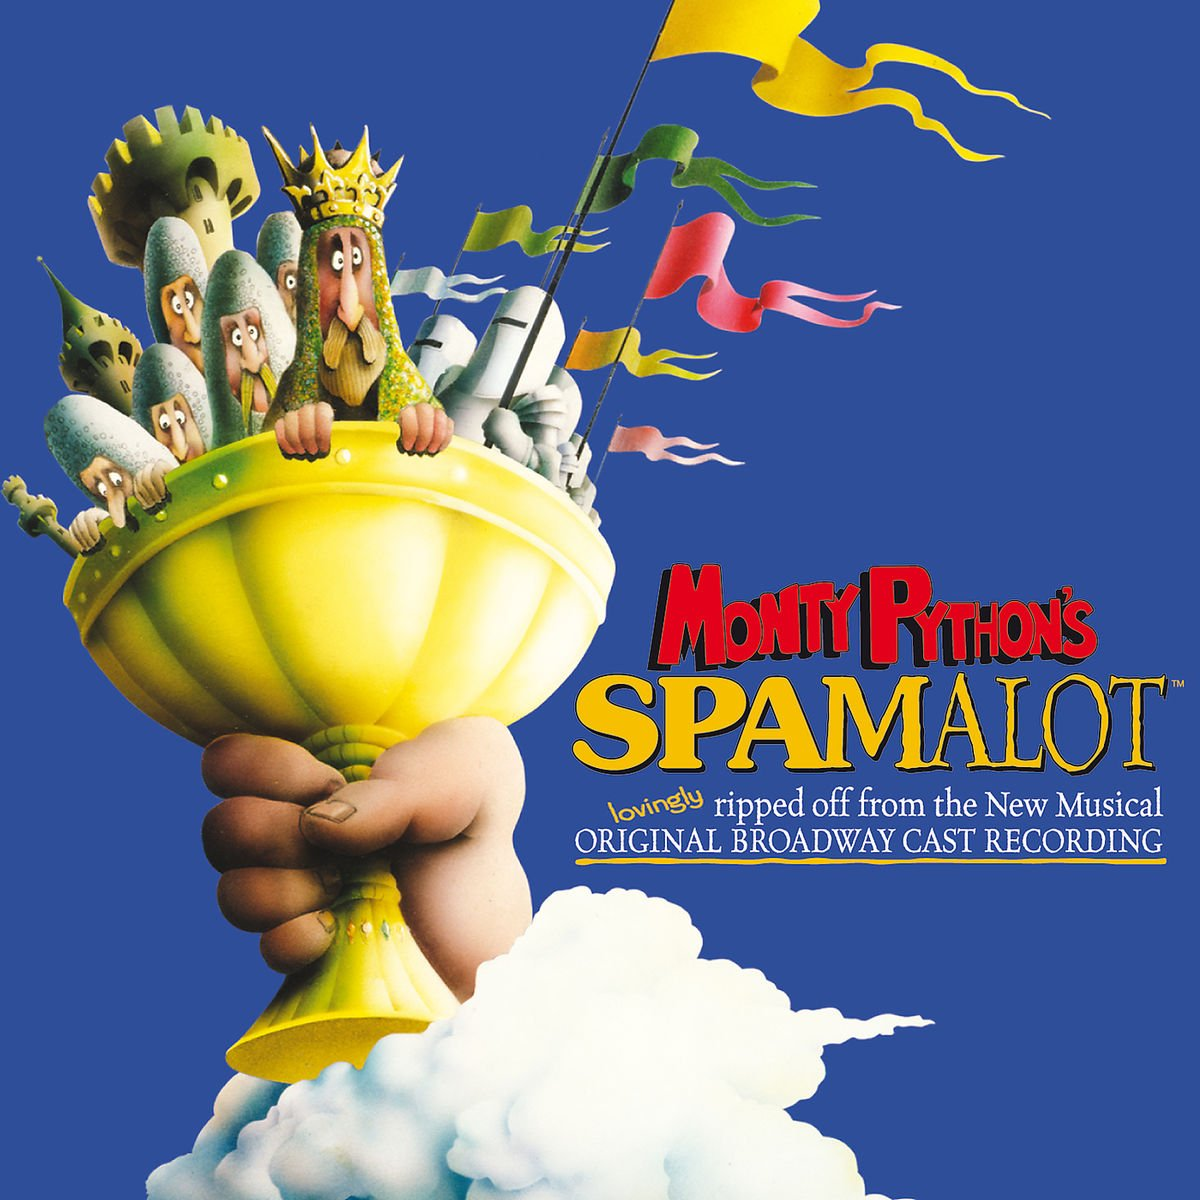 ... Christopher Sieber, Michael McGrath, Steve Rosen, Christian Borle -  Monty Python's Spamalot (2005 Original Broadway Cast) - Amazon.com Music